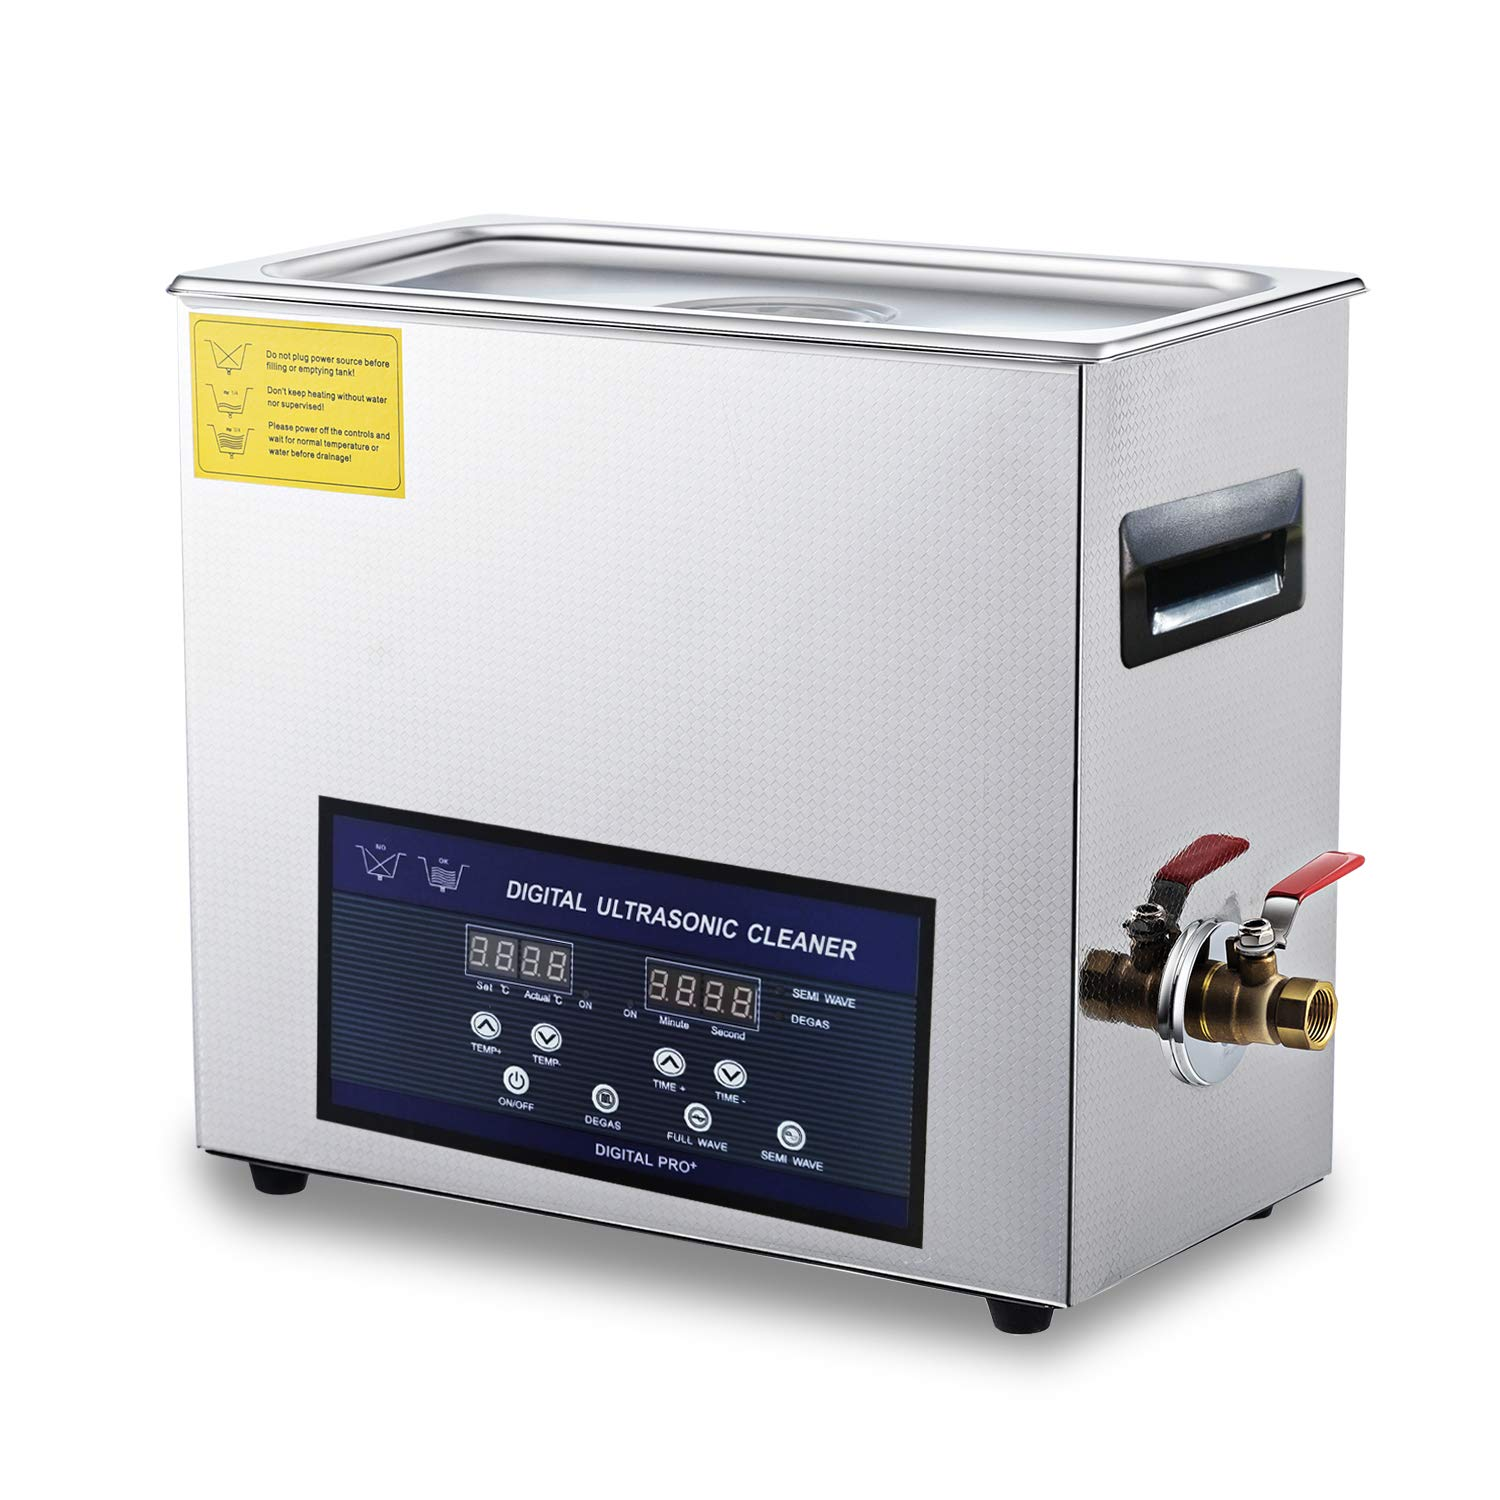 Ultrasonic Carburetor Cleaner 28/40khz Dual Frequency Cleaner 6L Stainless Steel Digital Lab Ultrasonic Cleaners with Timer Heater LED Screen by Kaimashi